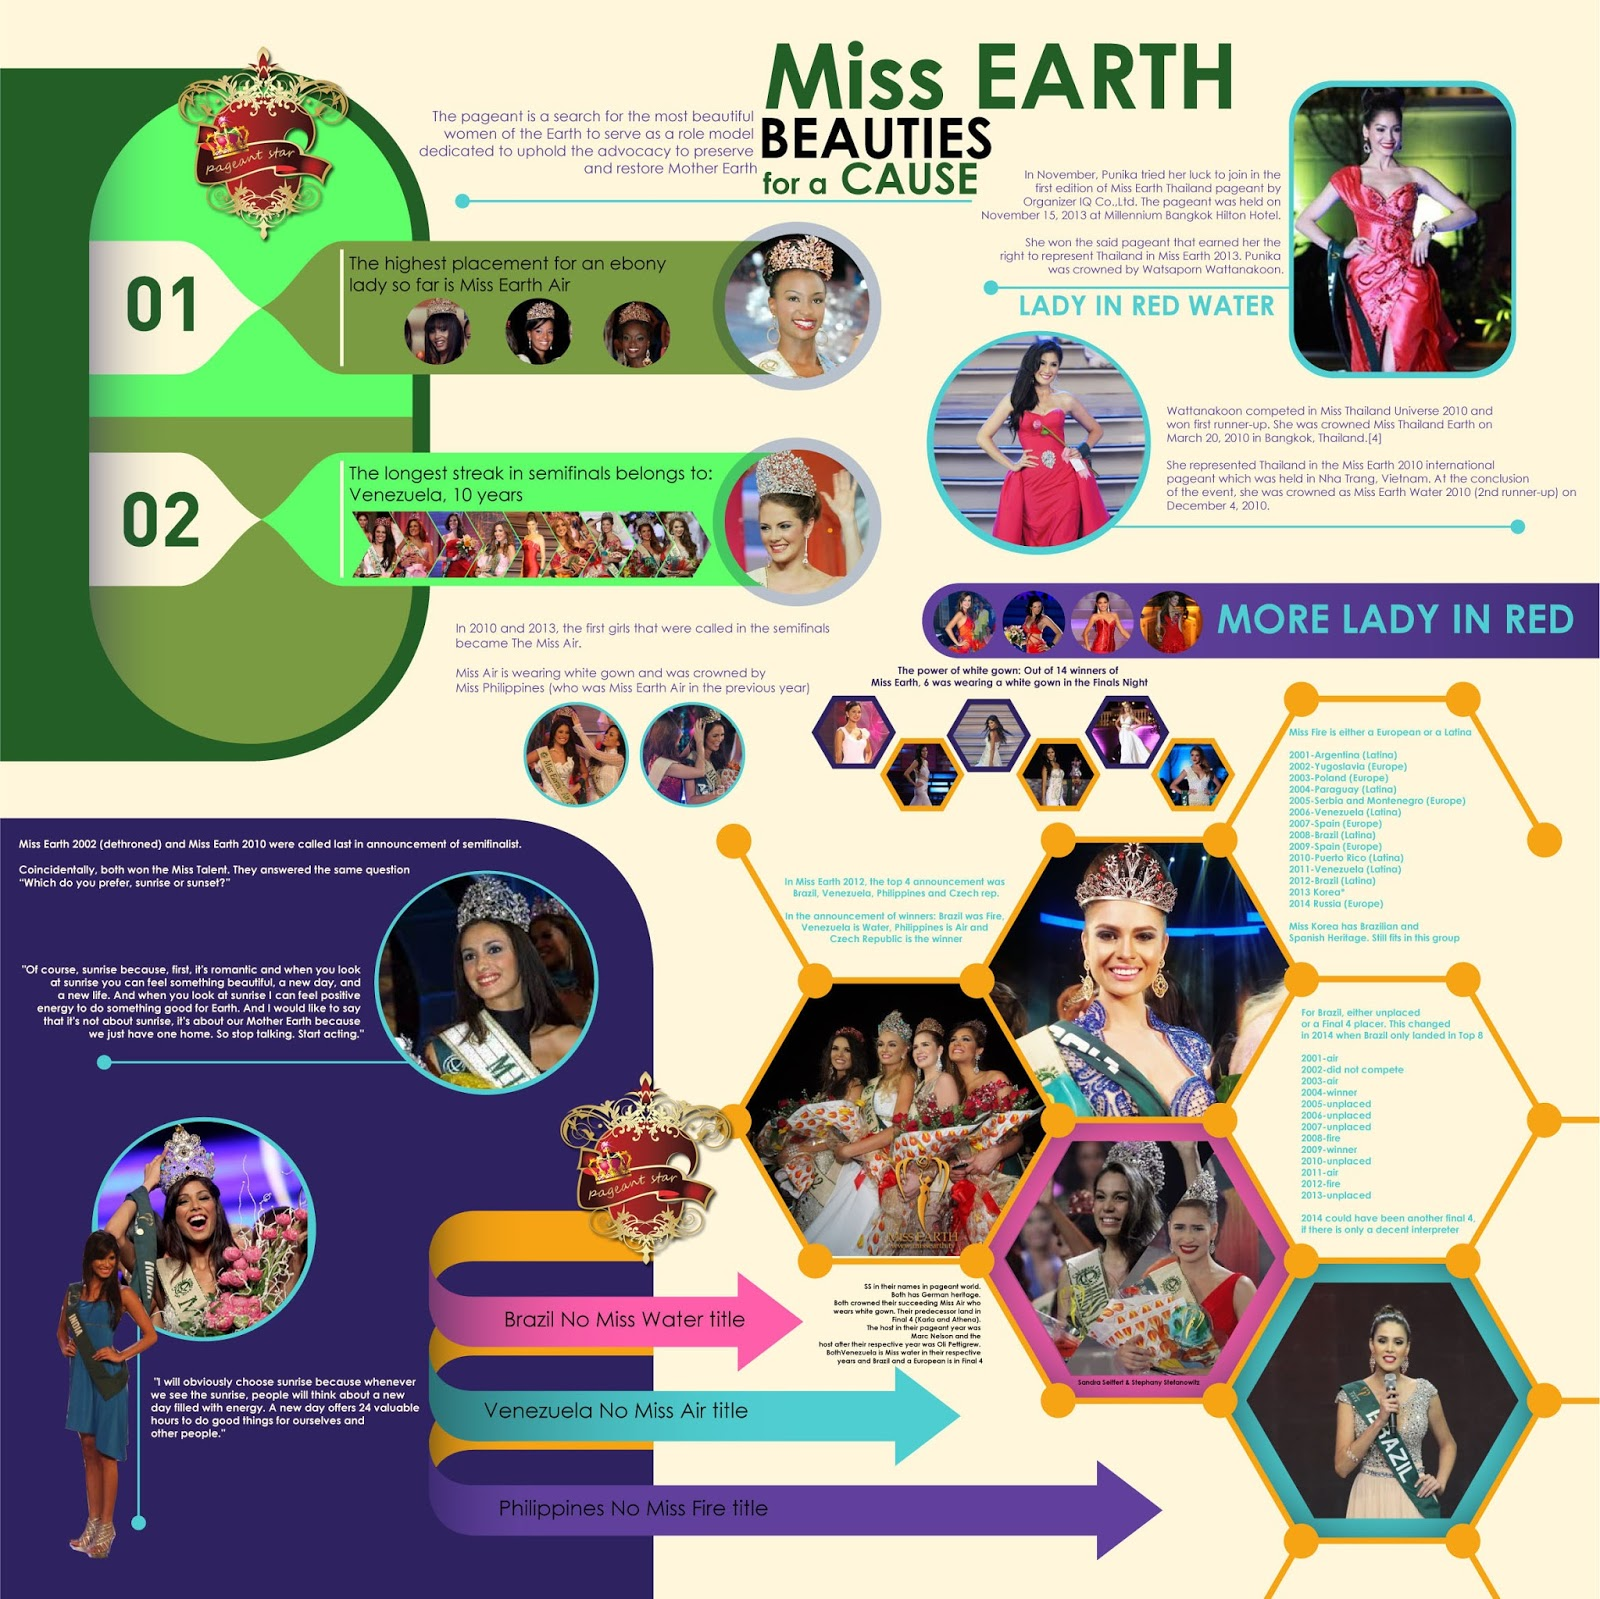 Miss Earth - Beauties for a Cause